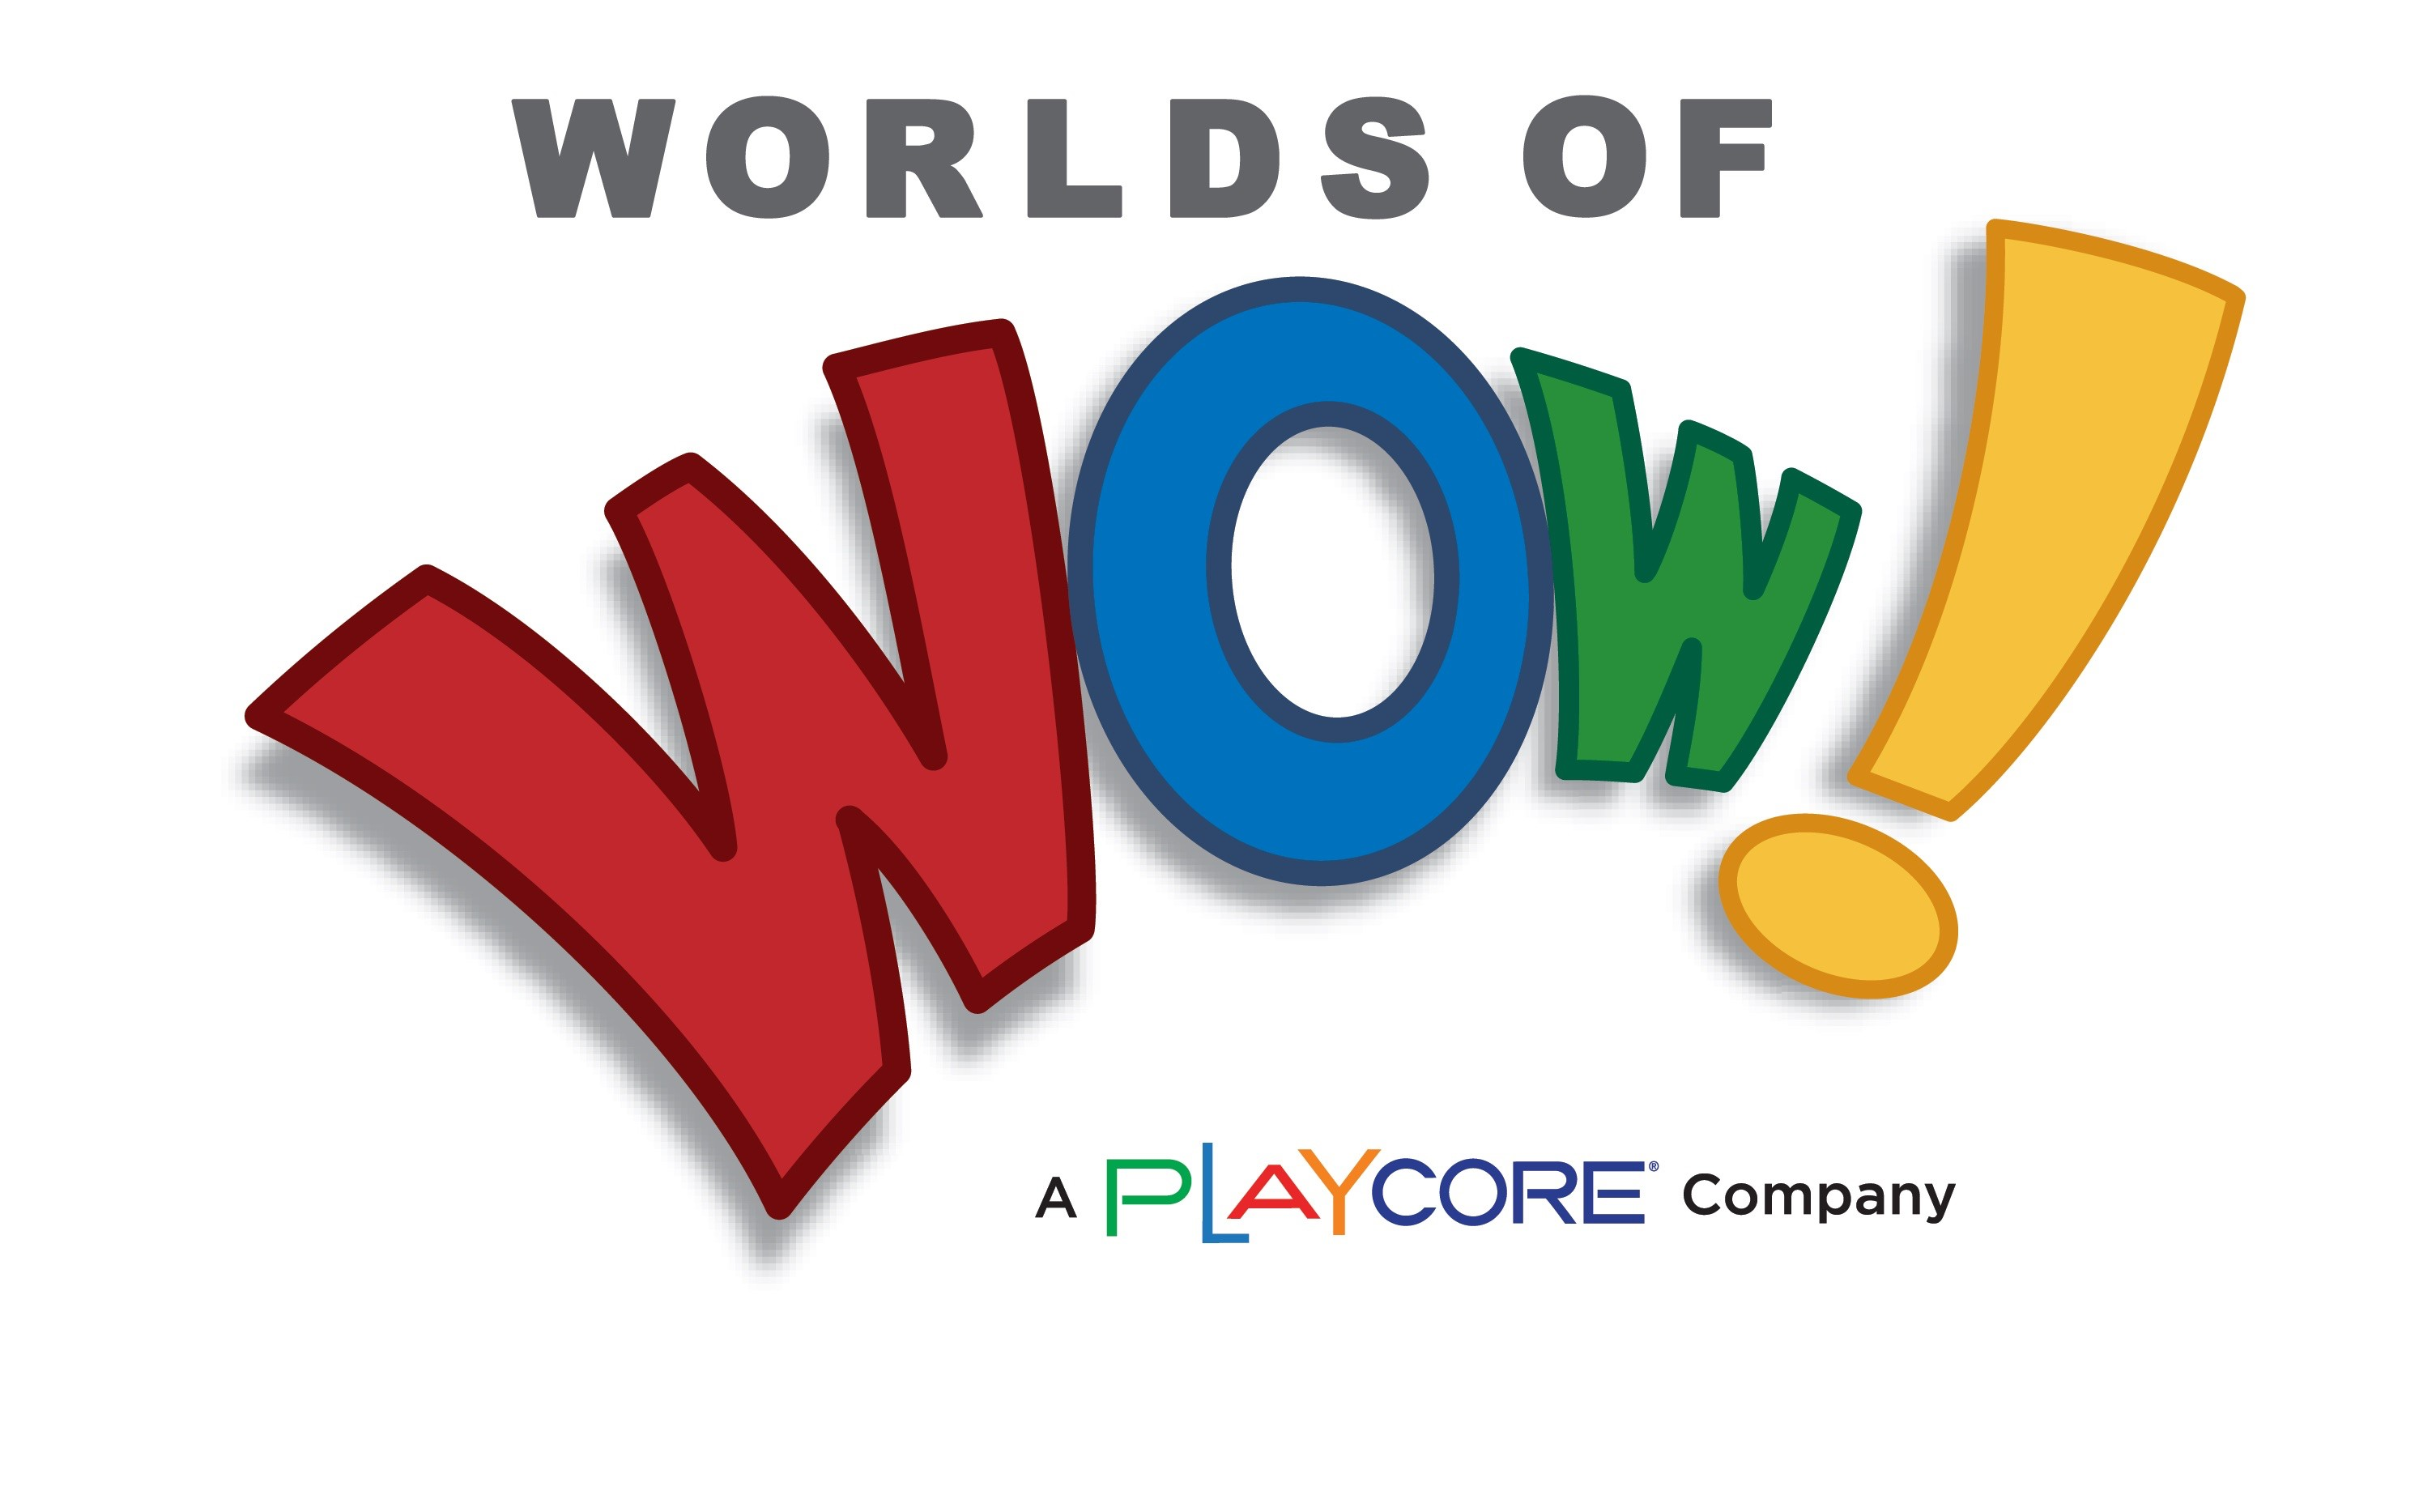 Worlds of Wow! A Playcore Company